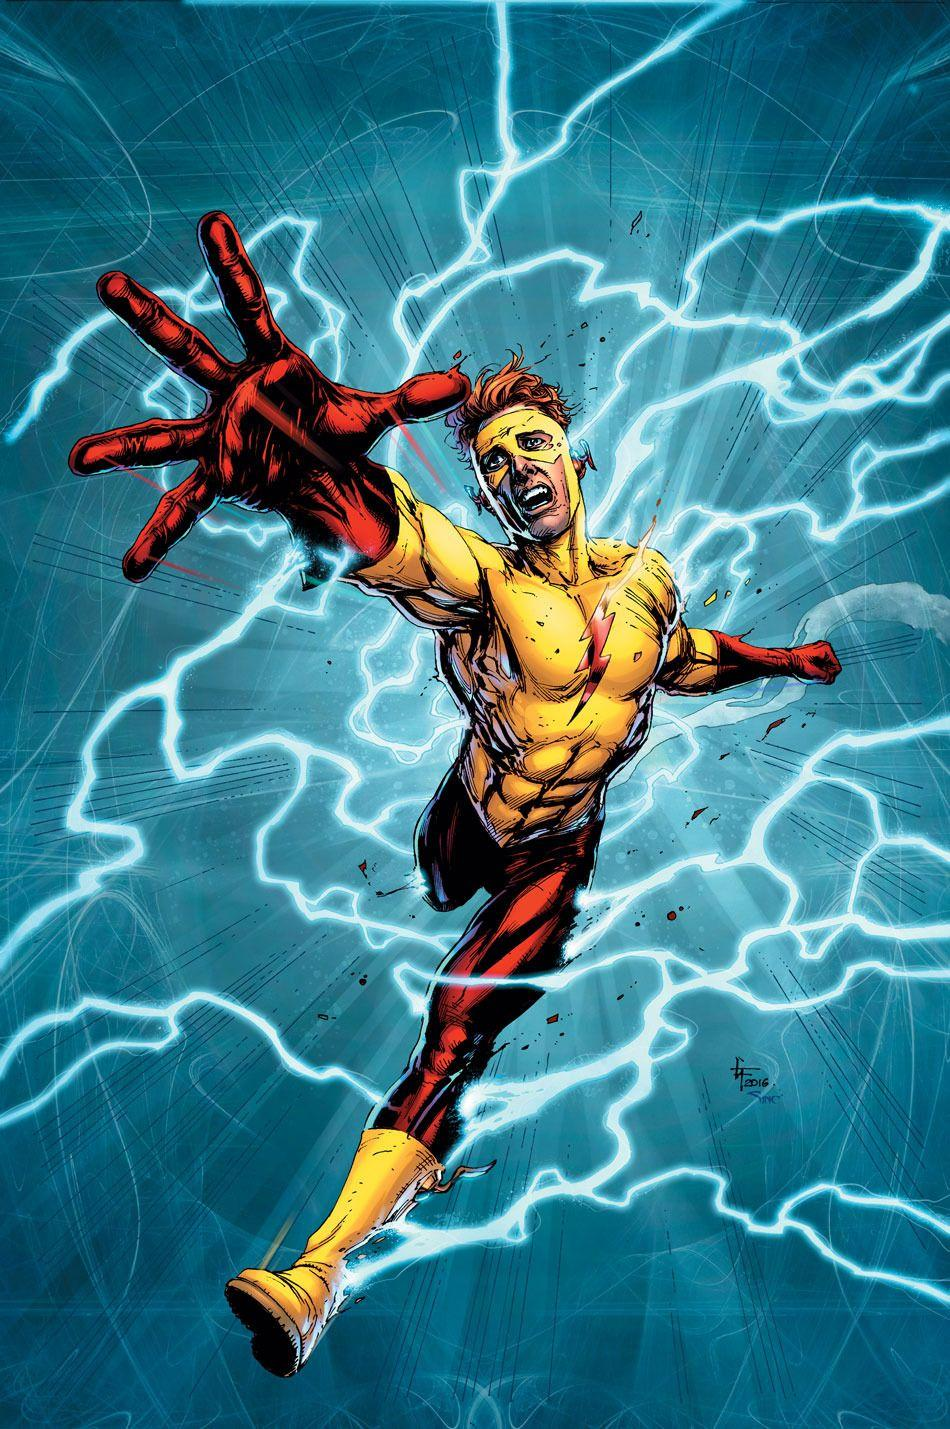 Wally West screenshots, image and pictures